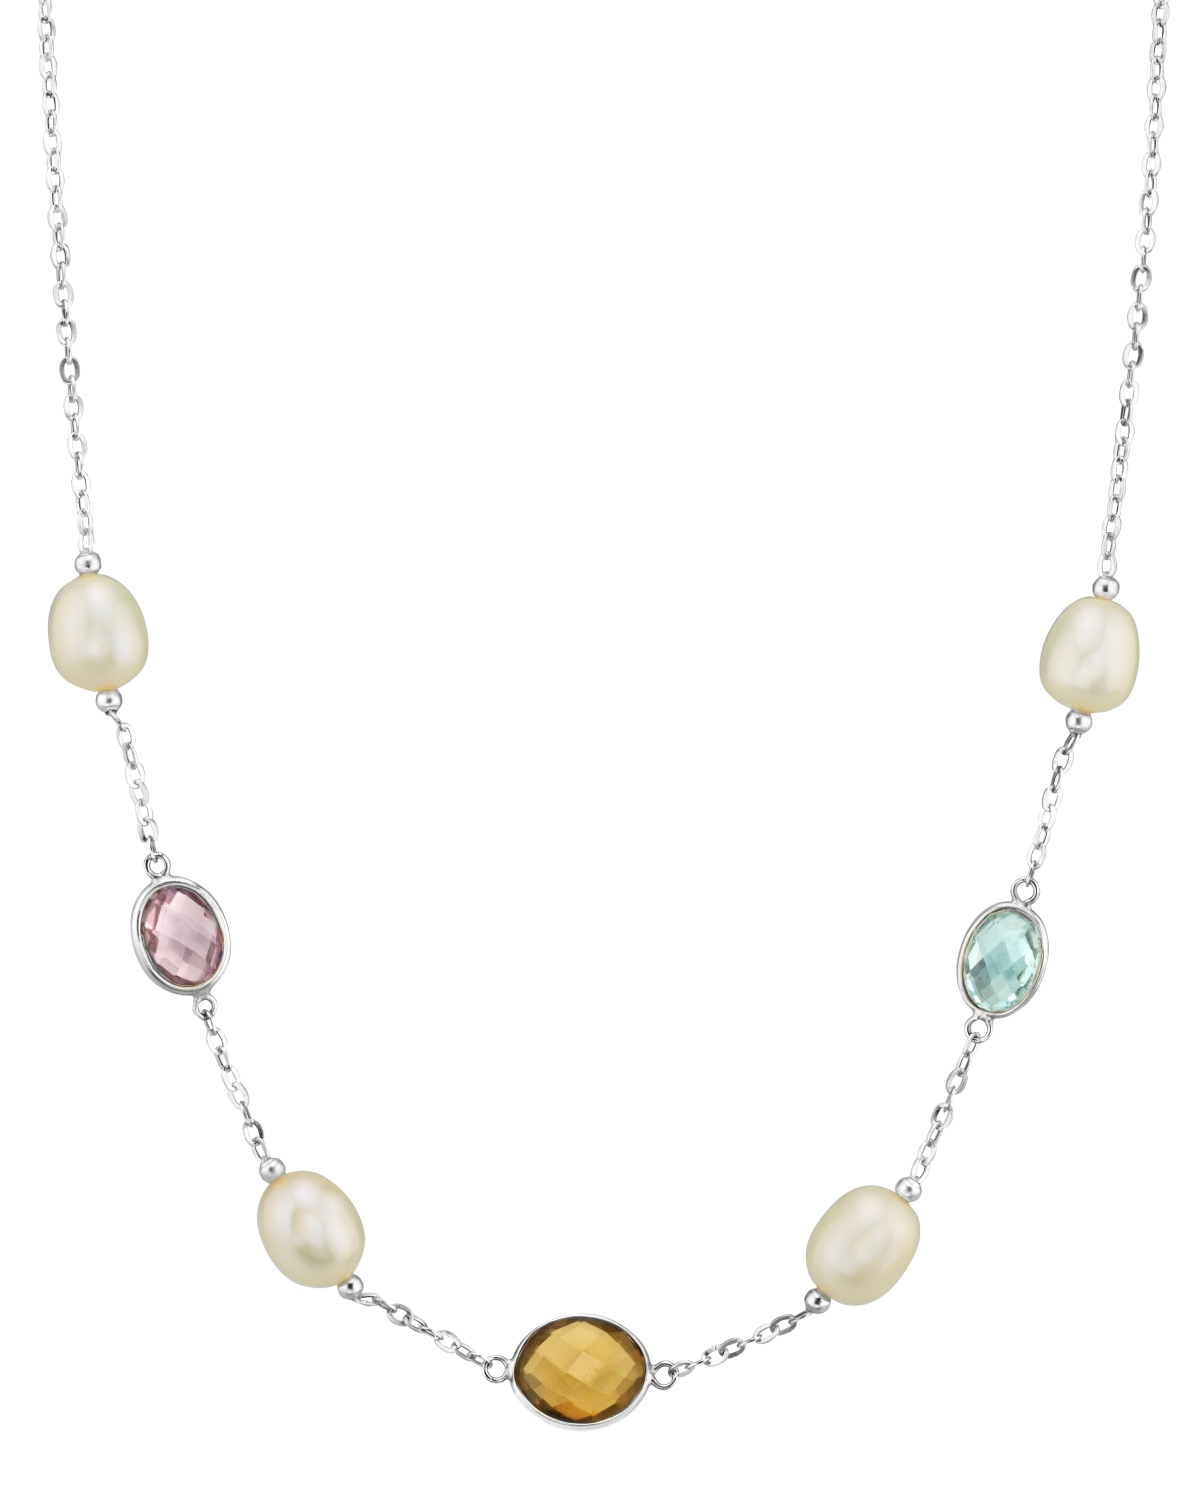 14K Gold Drop-Shape White Freshwater Pearl Tincup Alana Necklace